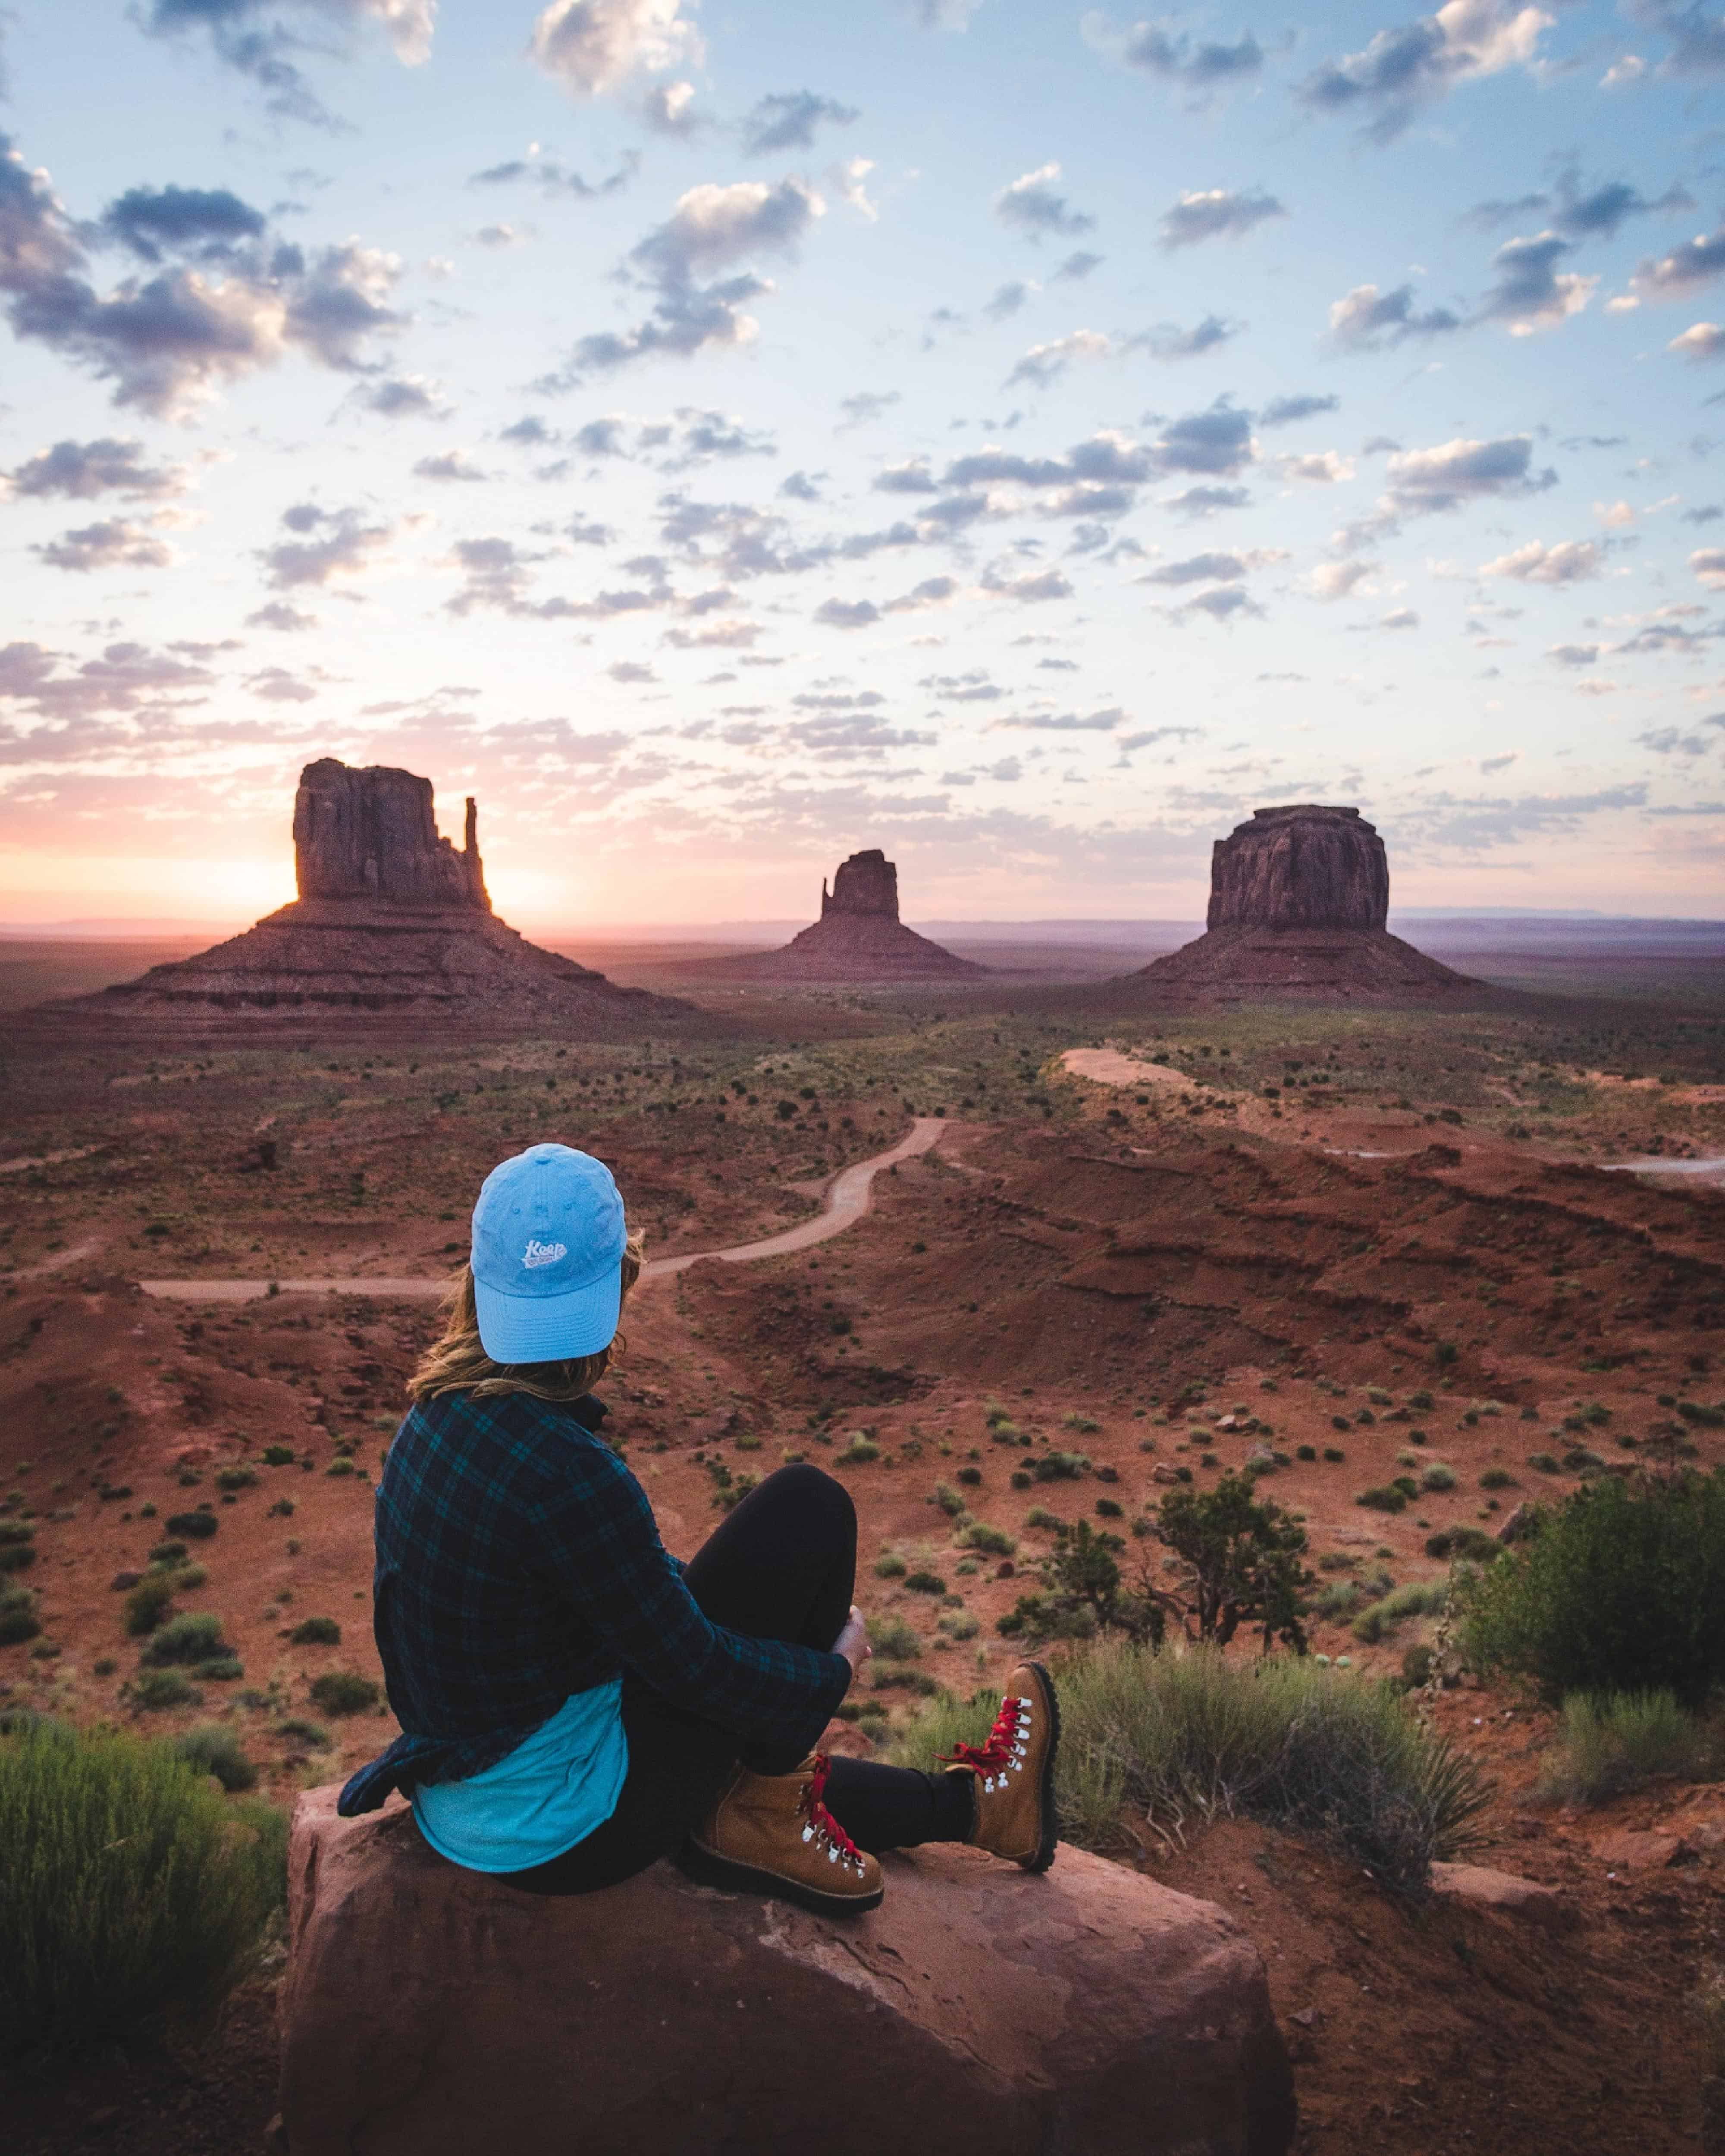 monument valley mittens famous view hotel navajo tribal park